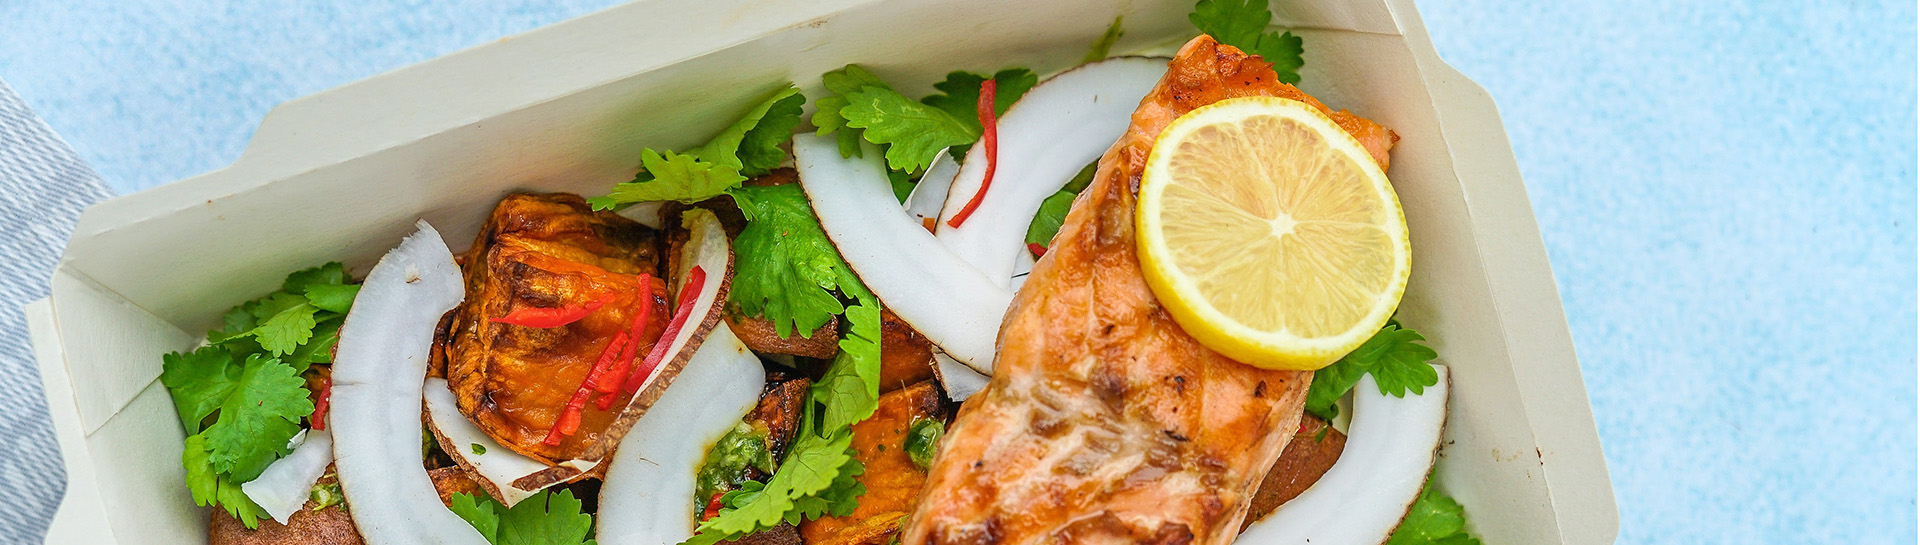 Takeout tray of salad with salmon